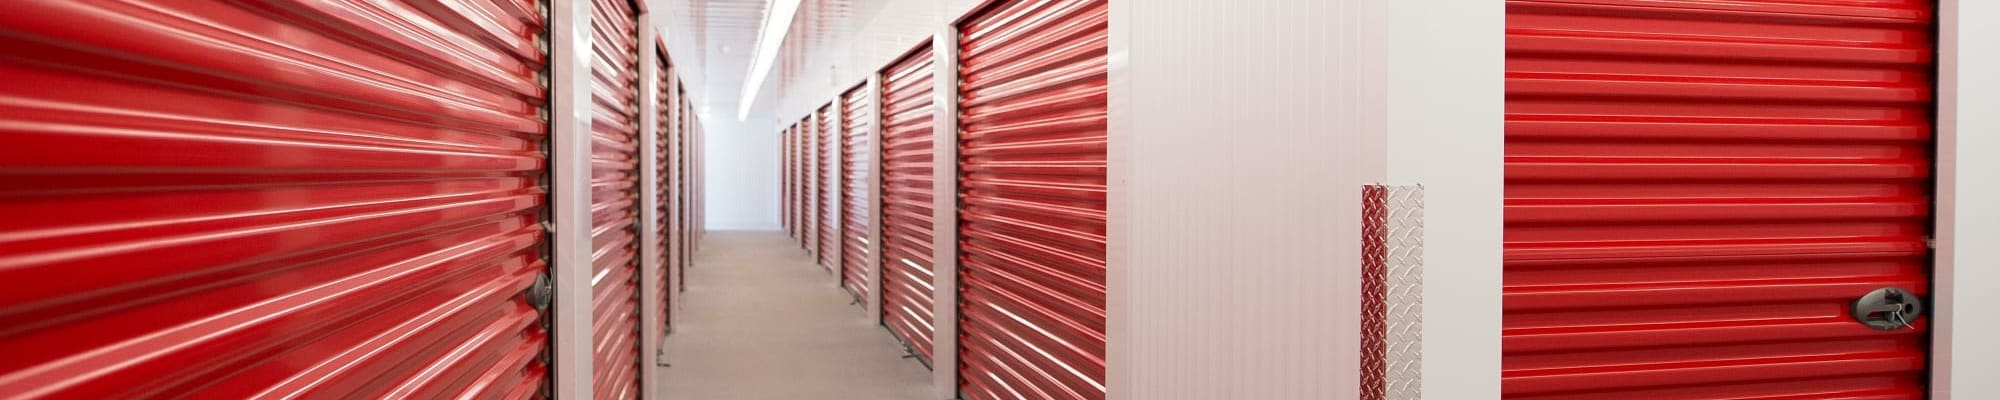 Unit Sizes and Prices at Mini Storage Depot in Knoxville, Tennessee